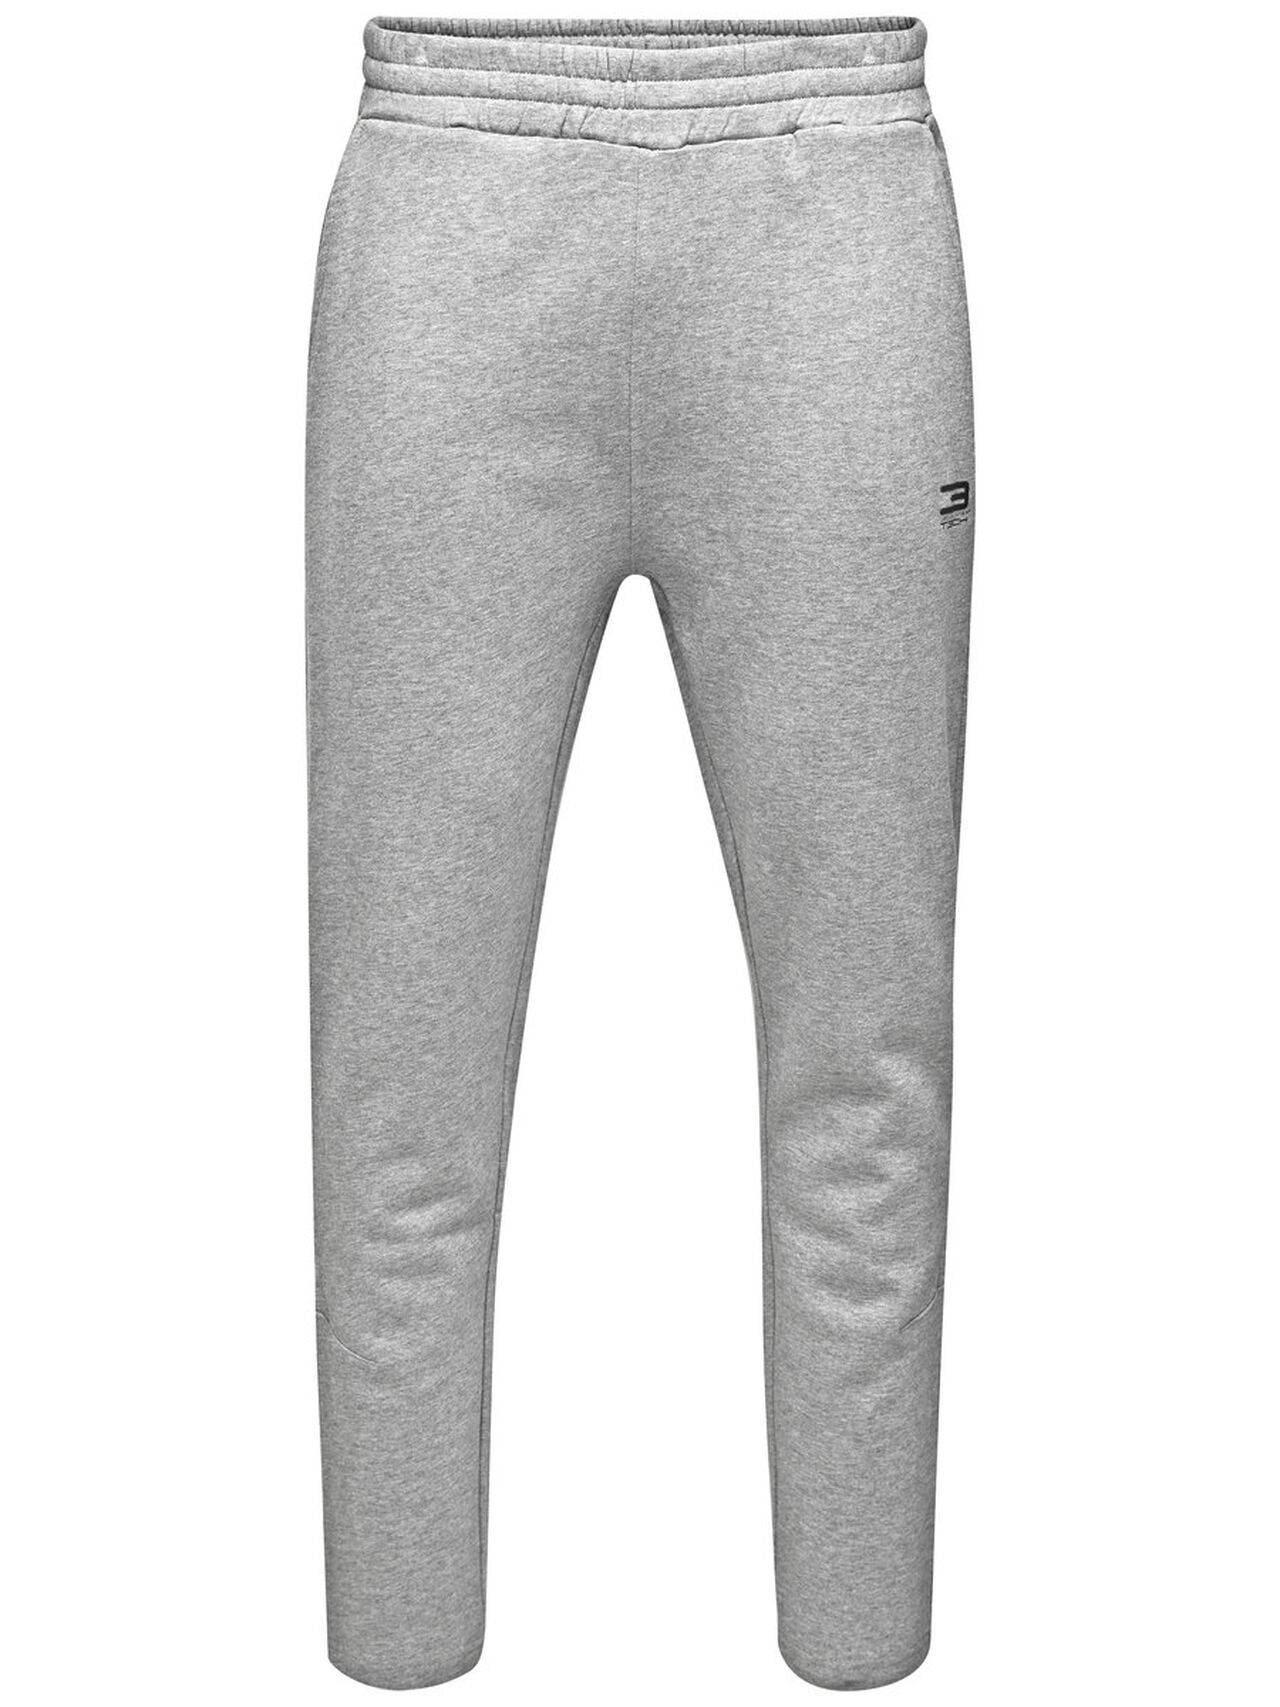 Jack & Jones Sports Sweat Pants LightGreyMelange